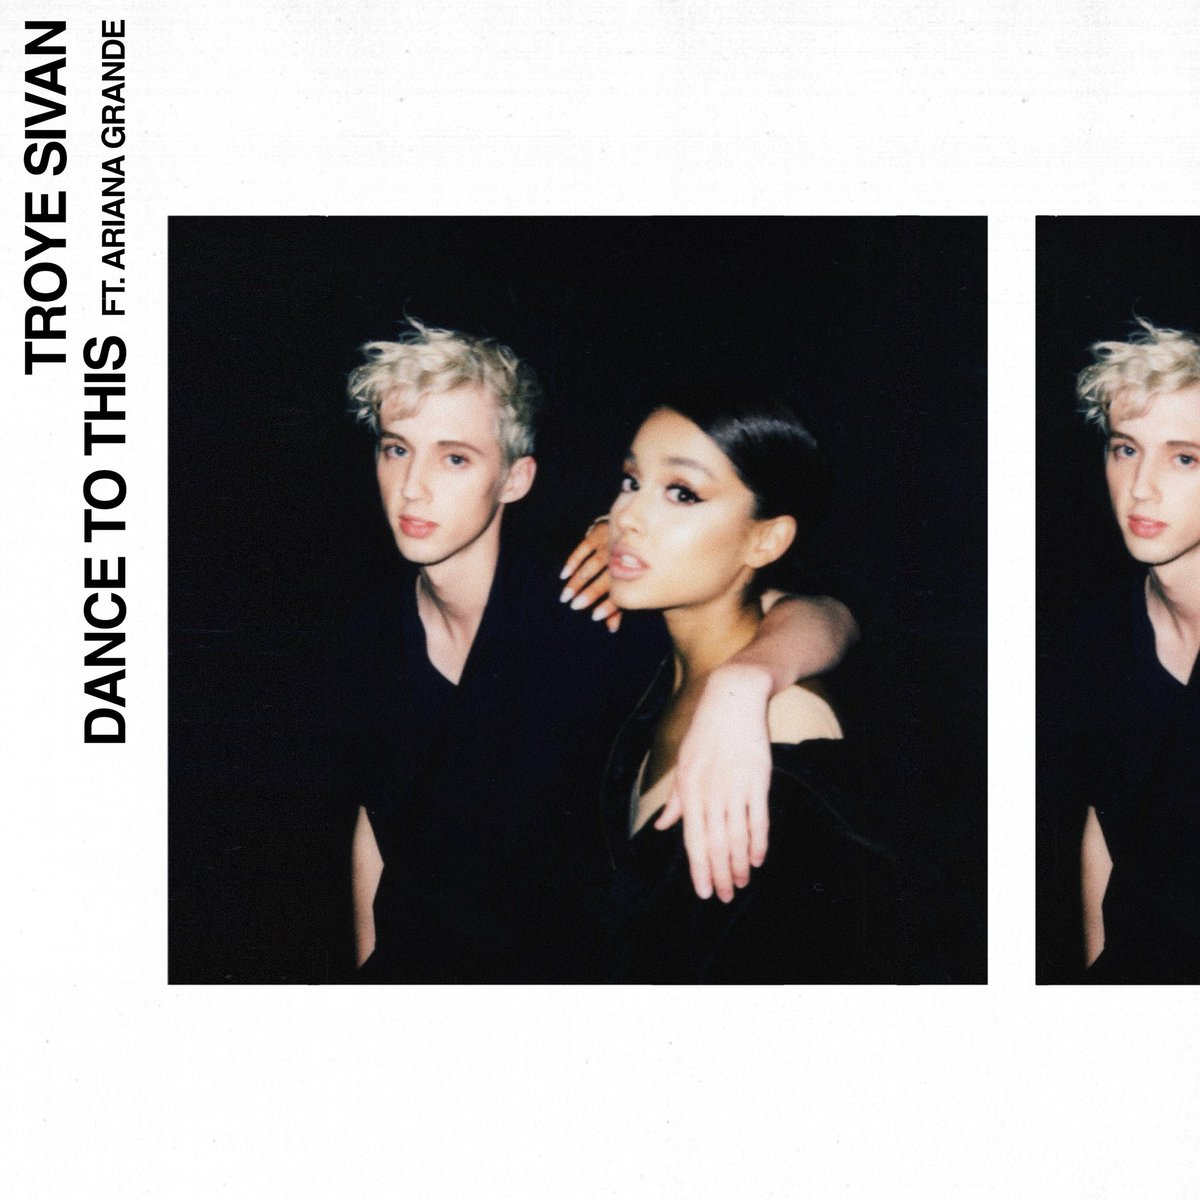 TRACK REVIEW: 'Dance to This' – Troye Sivan (ft. ArianaGrande)